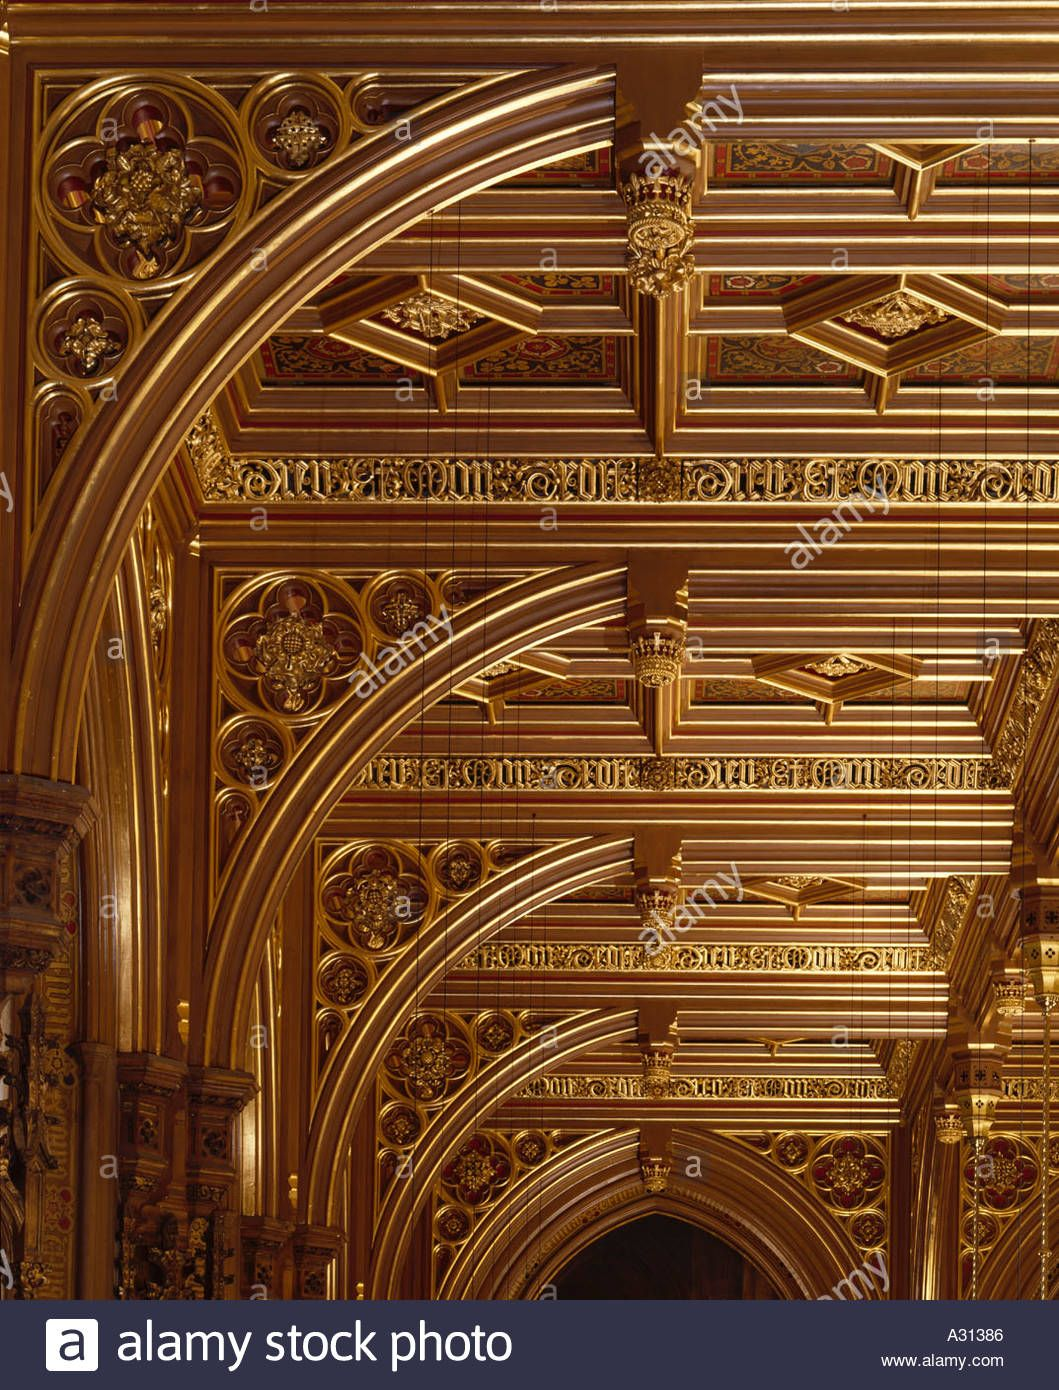 House Of Lords, Interior Restoration Houses Of Parliament, London, 1840    1852. Architect: Augustus Welby Pugin